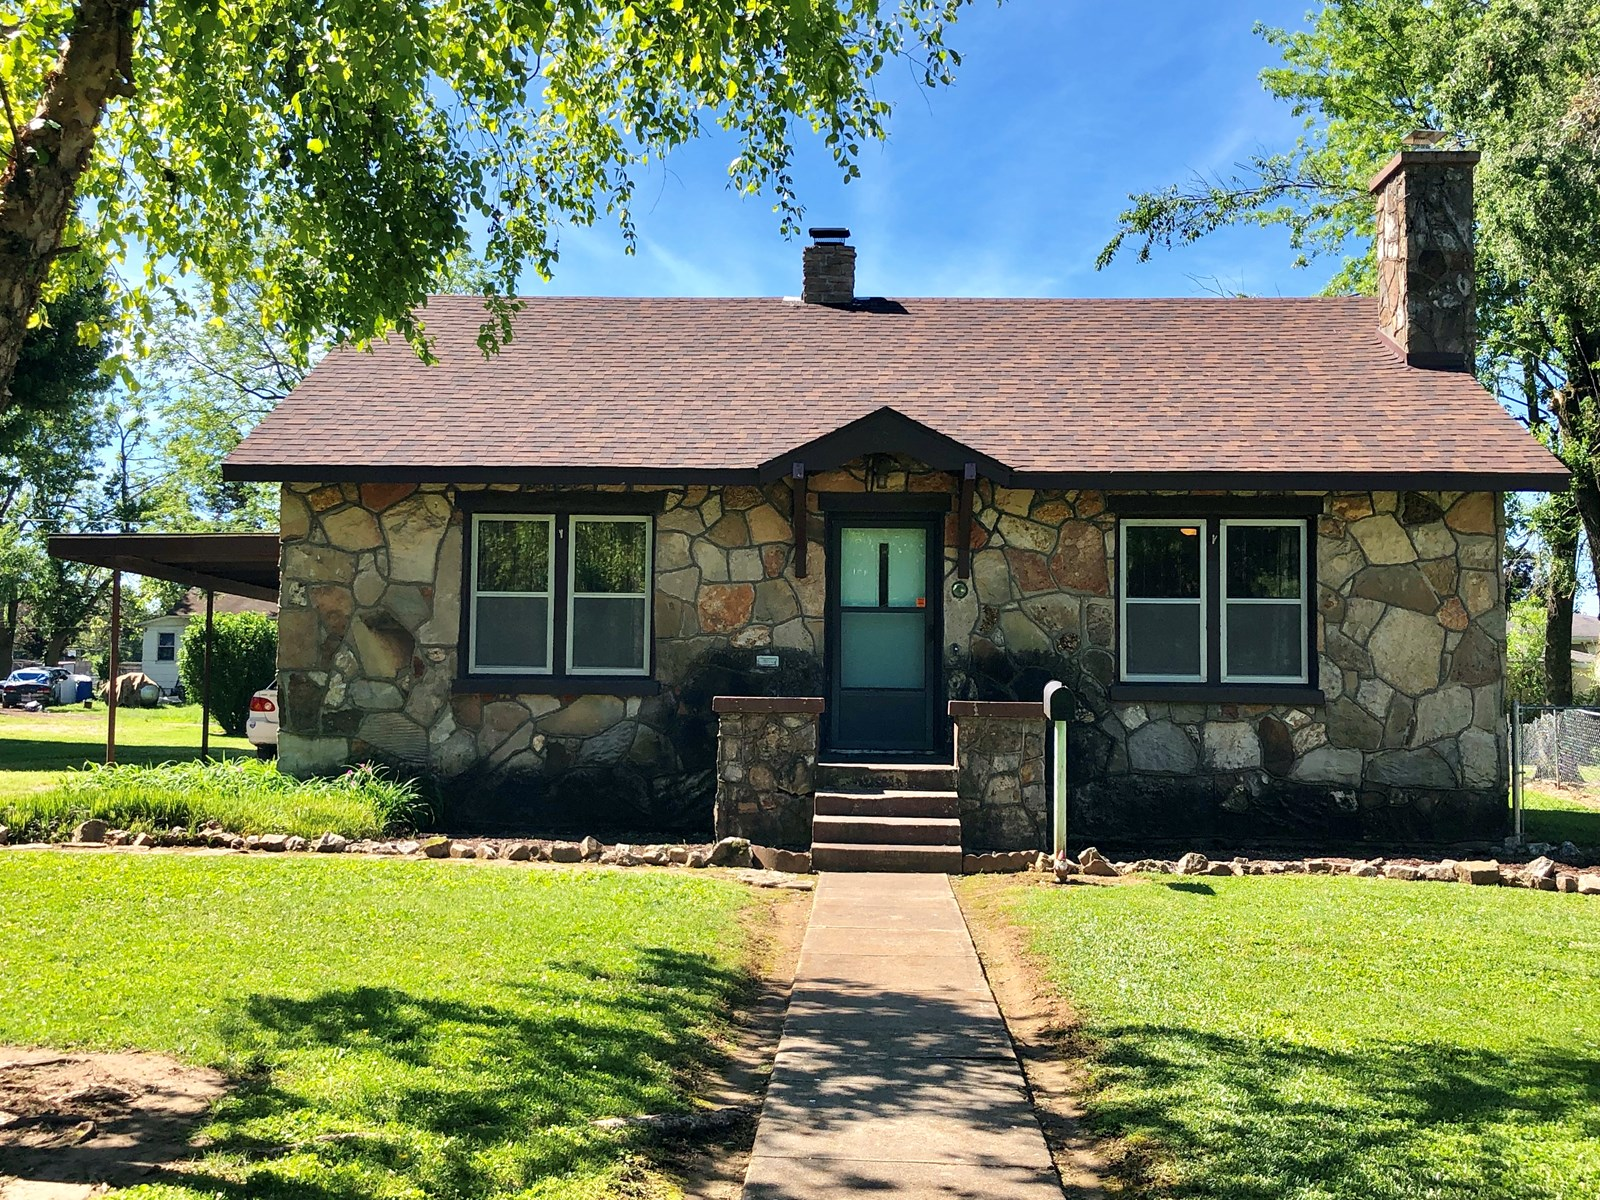 Home in Town for Sale in Southern Missouri